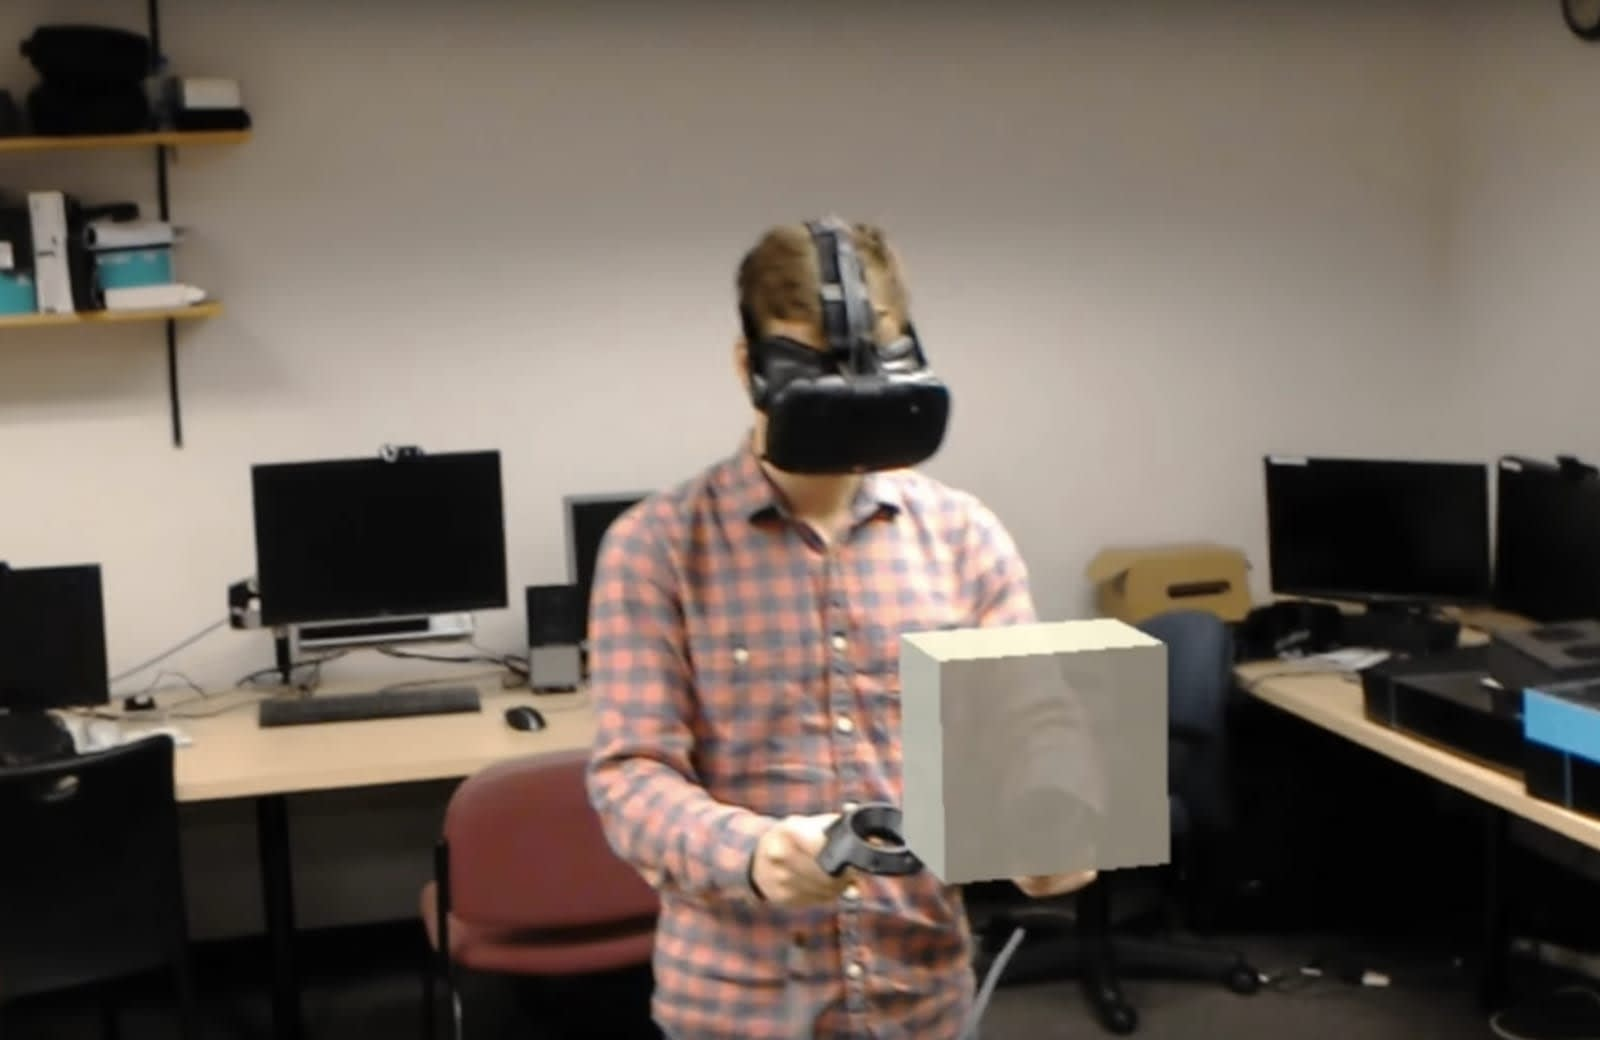 Developer combines HoloLens and Vive for 'shared reality'